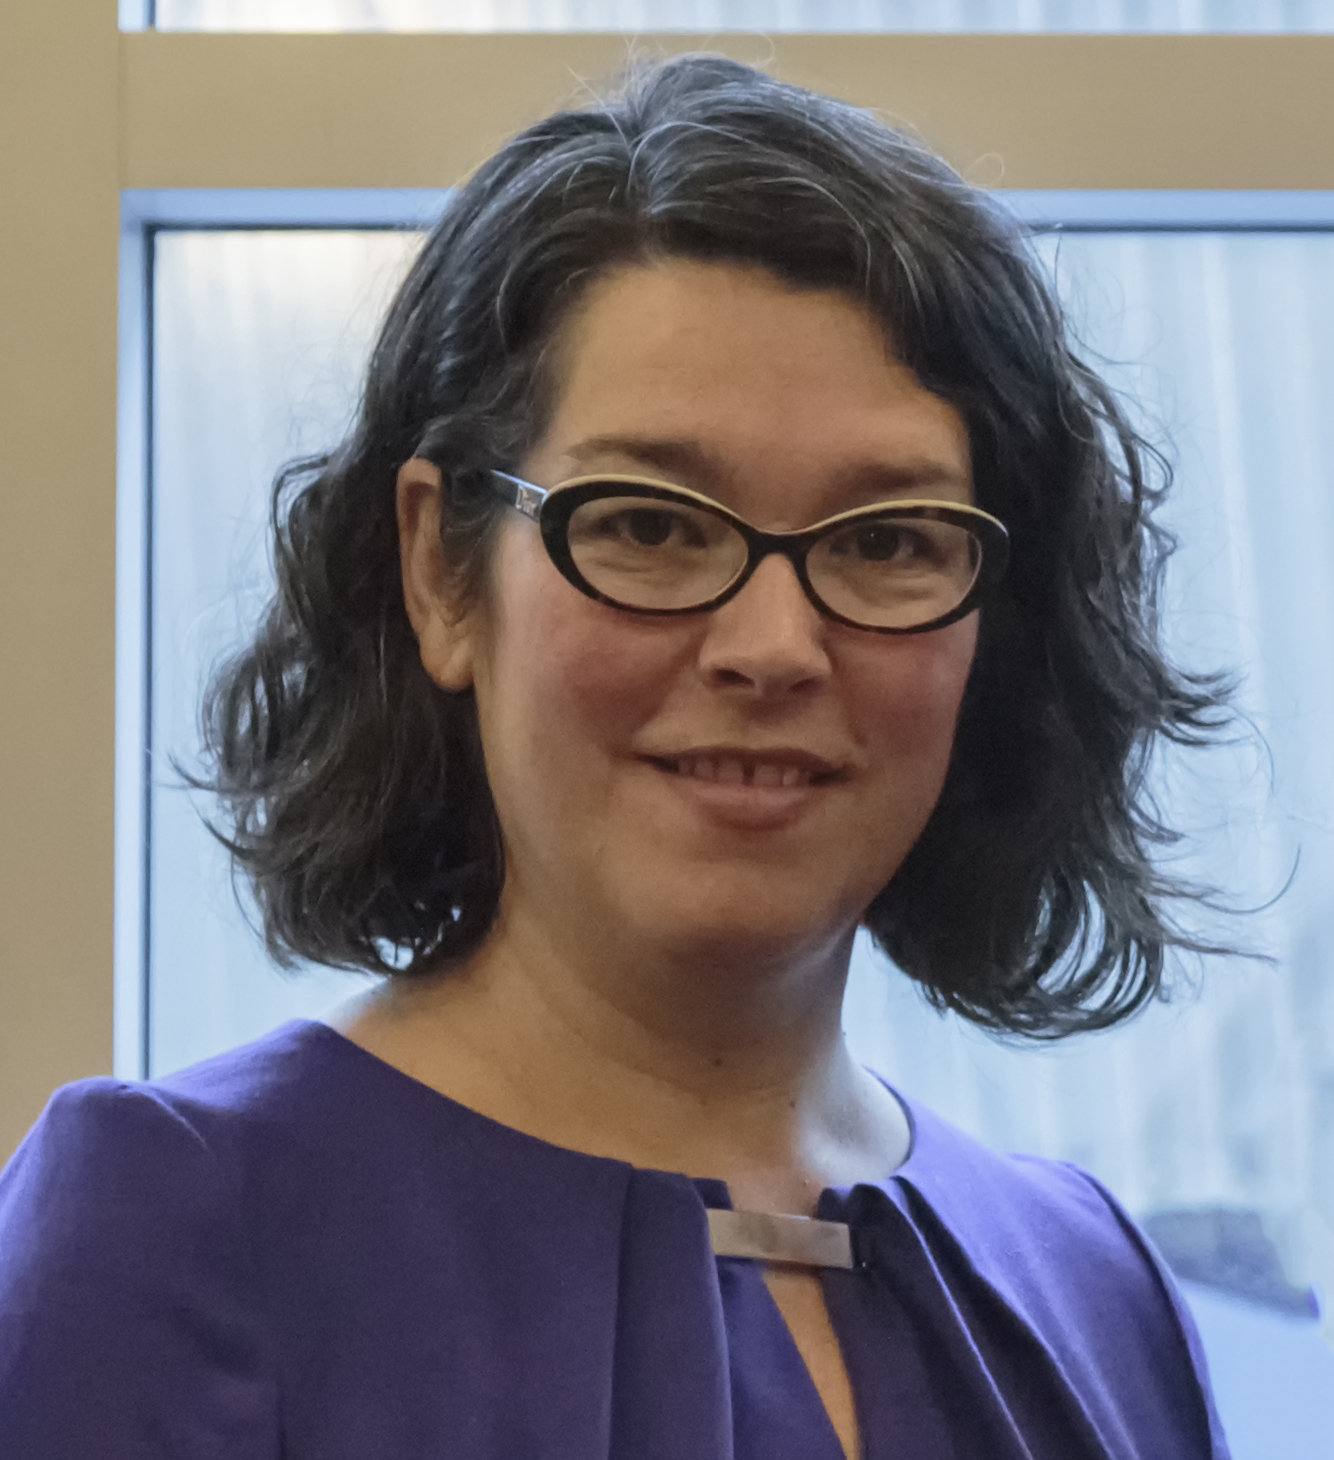 Marie Chapman - Past Chair, Governance & Executive Committee Chair, Nominations Committee Chair/CEO, The Canadian Museum of Immigration at Pier 21